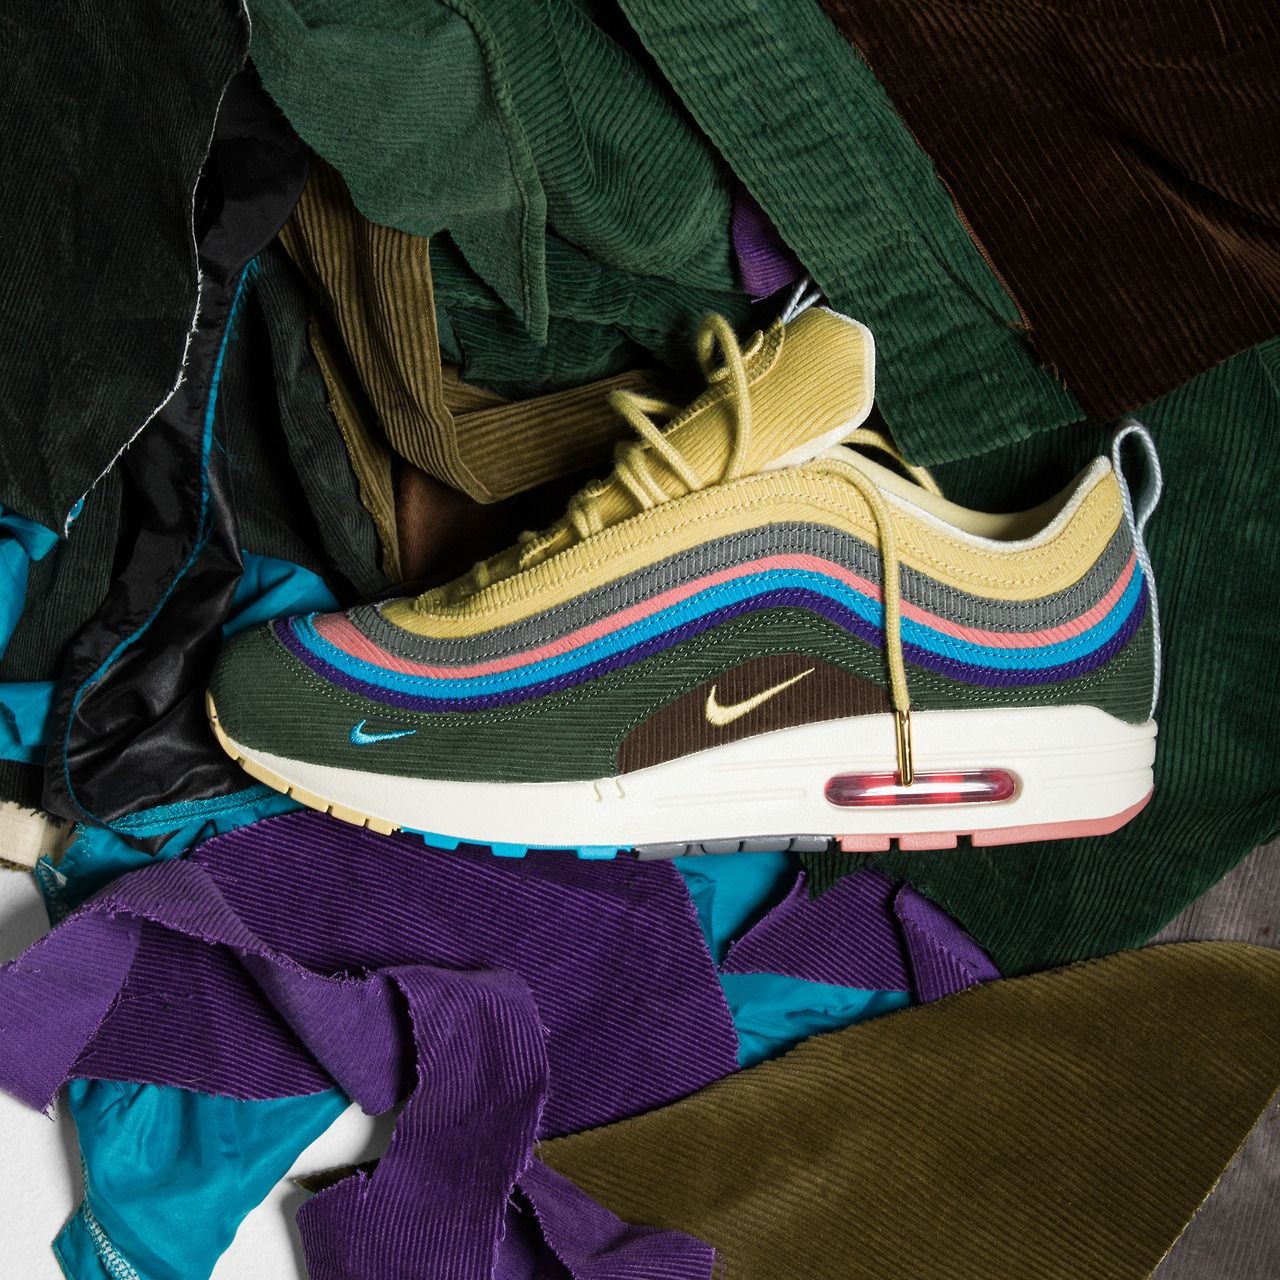 5f689b3ec NIKE x SEAN WOTHERSPOON | THE SHOEESS in 2019 | Sneaker boots, Shoes ...